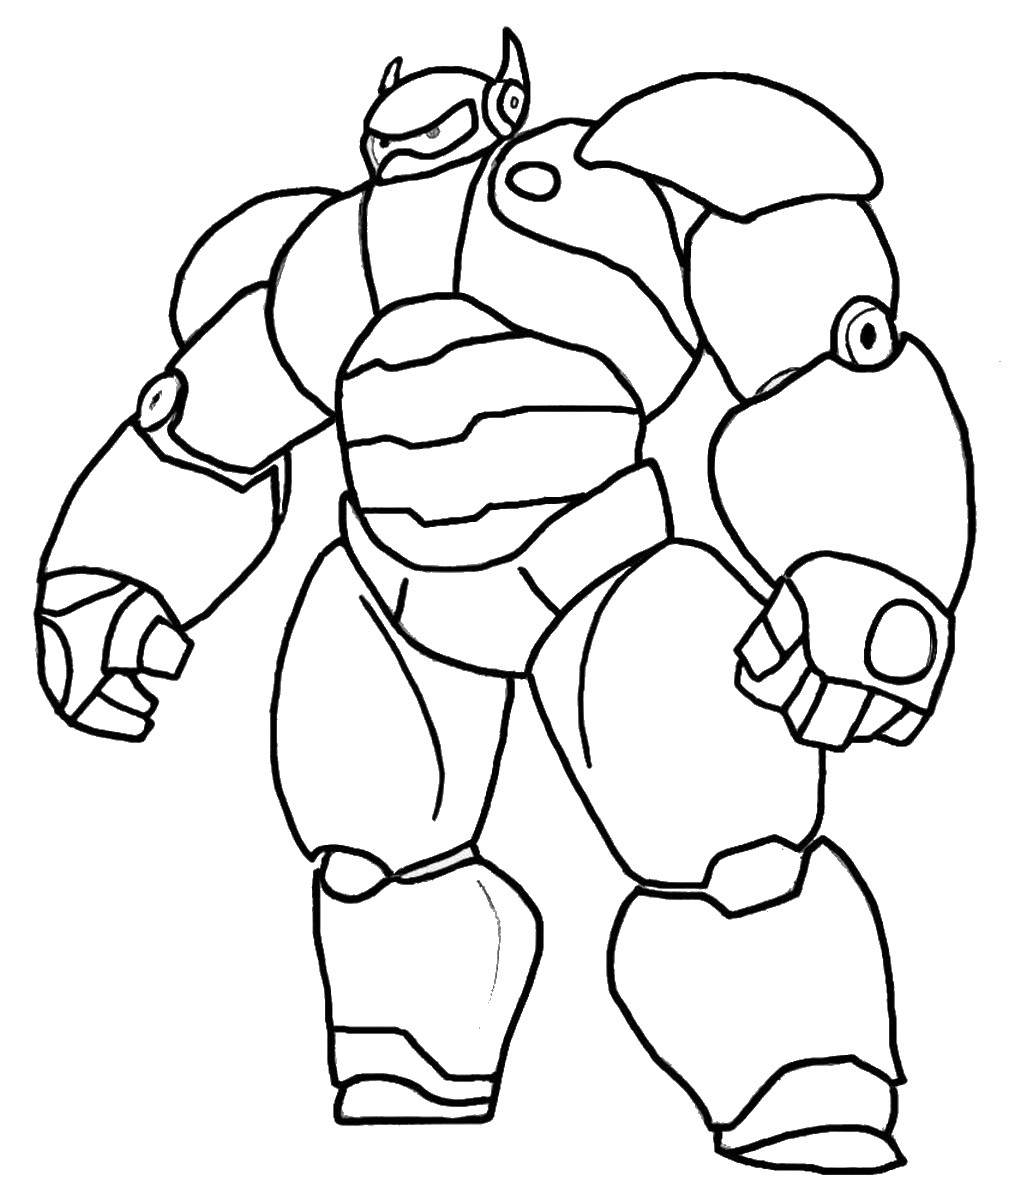 Big hero 6 coloring pages birthday printable for Large printable coloring pages